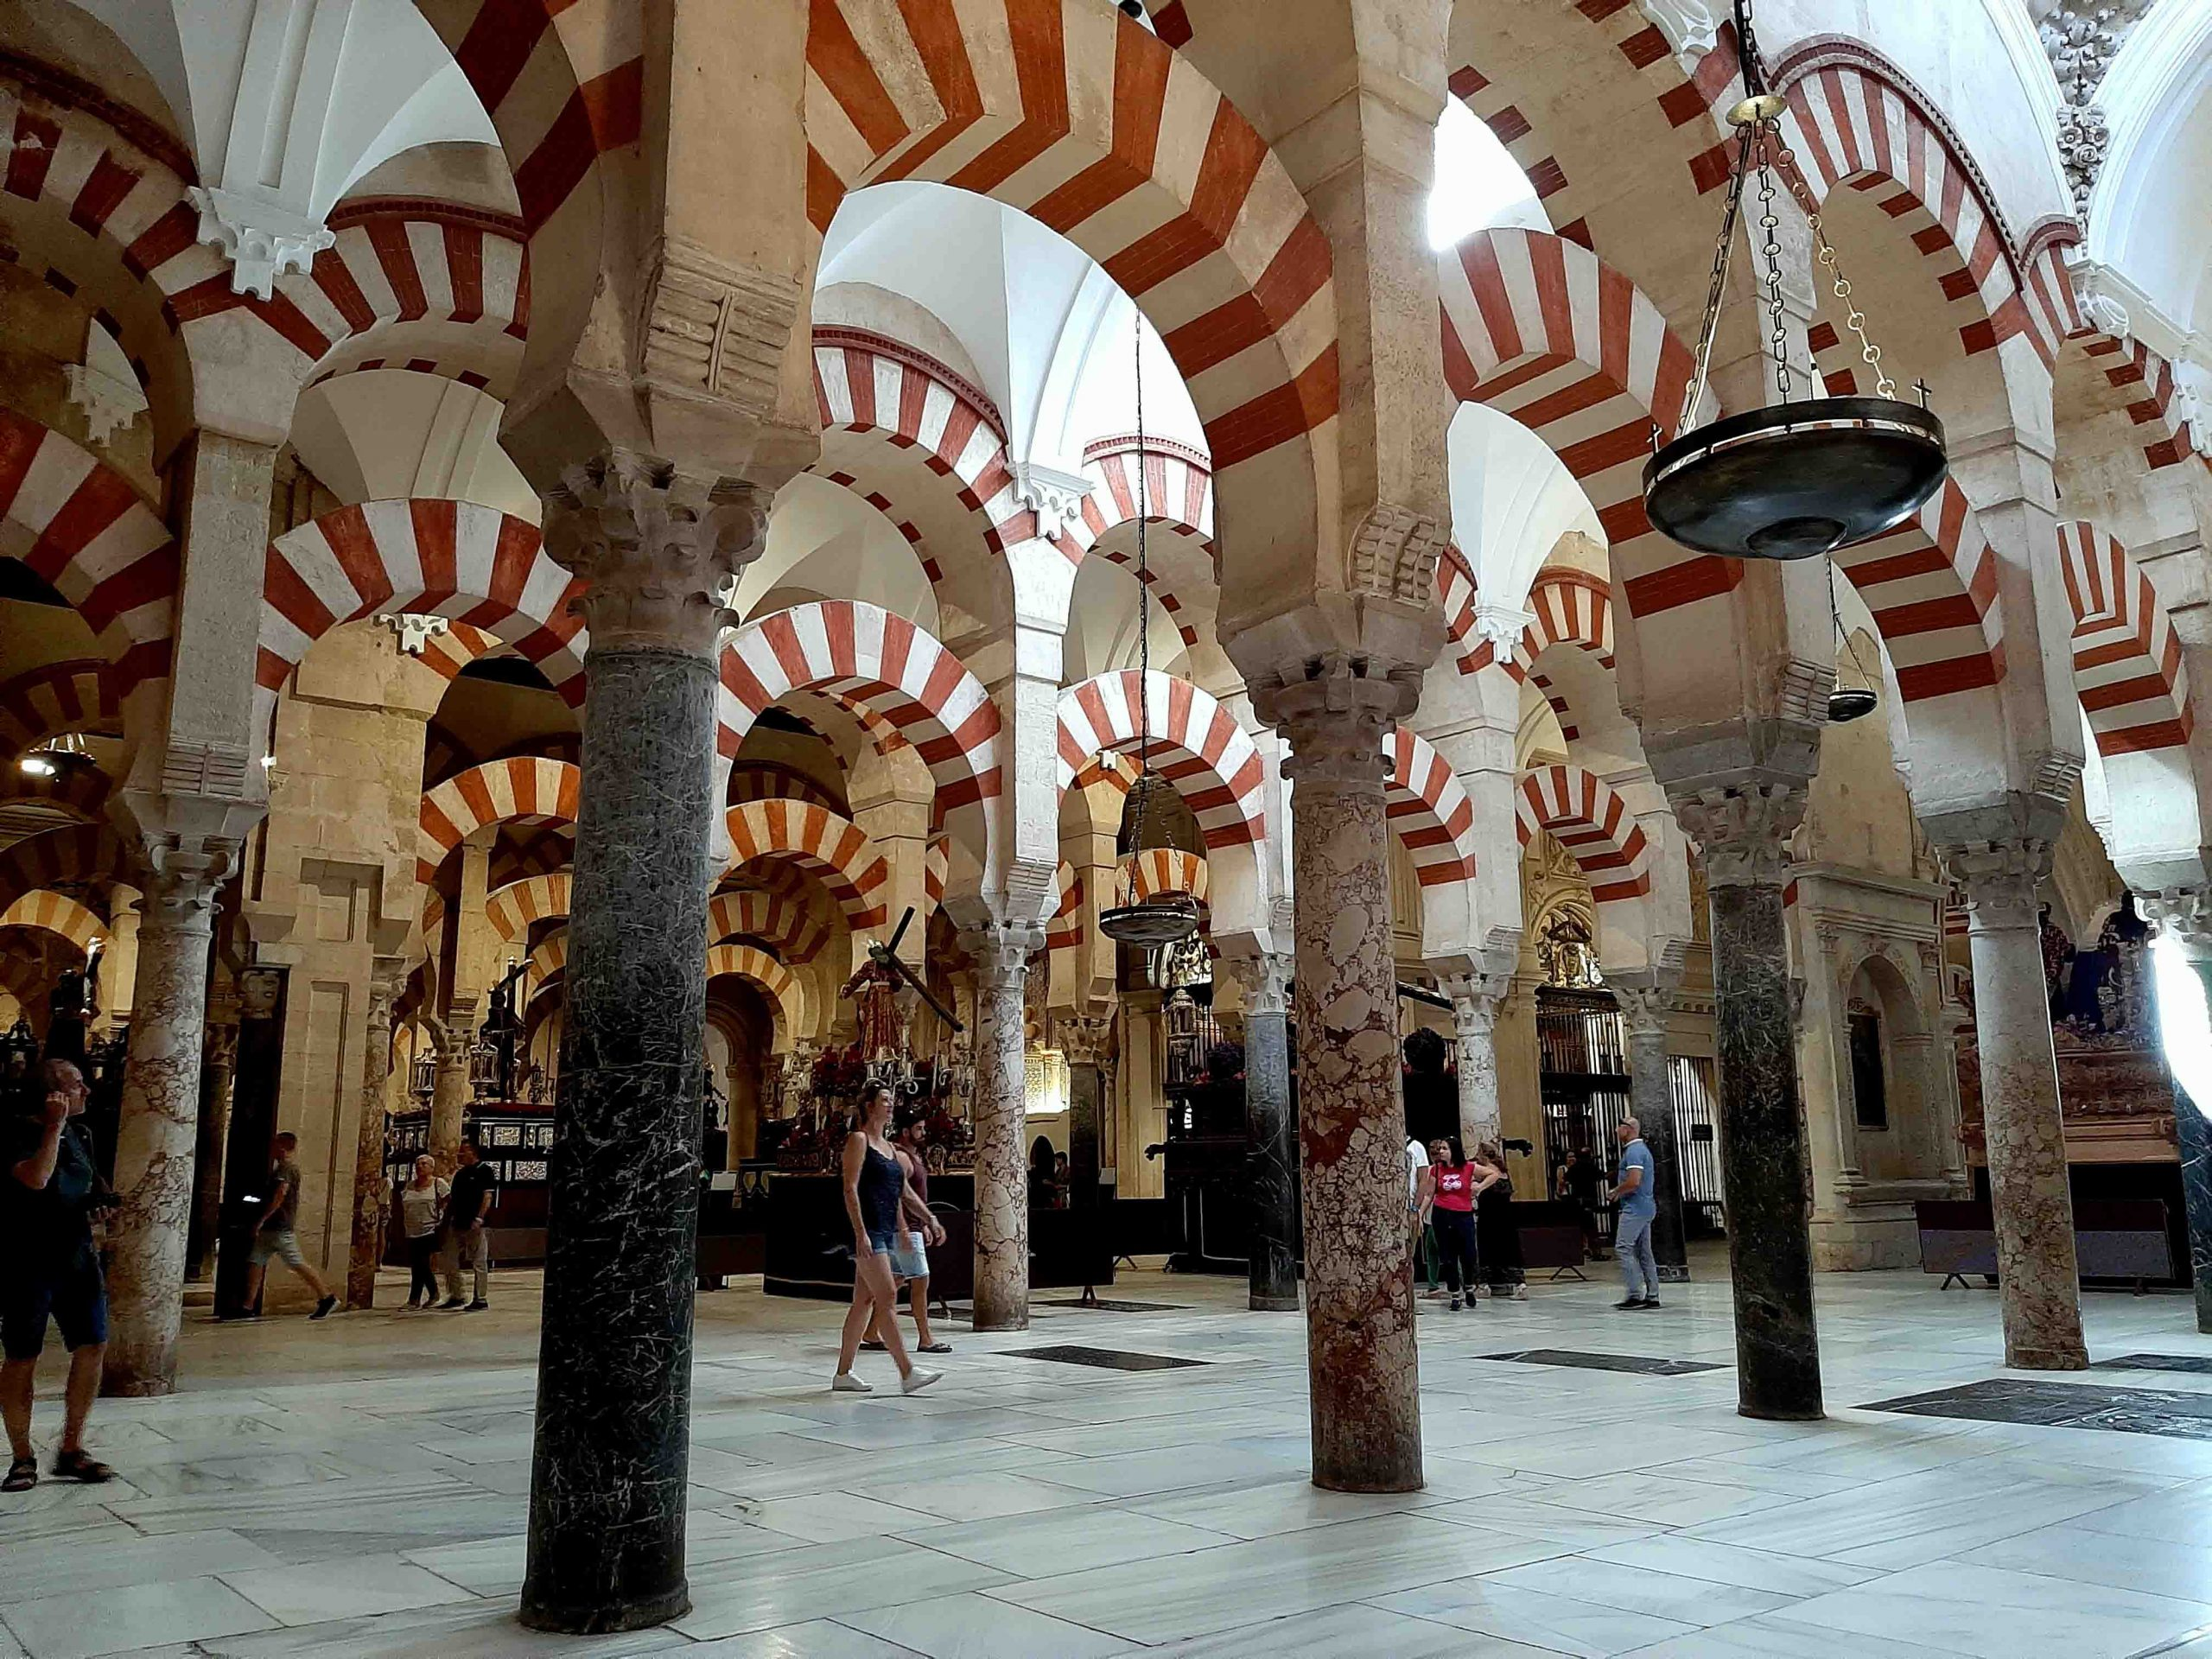 Things-to-do-in-Cordoba-Spain-Mezquita-Glimpses-of-the-World